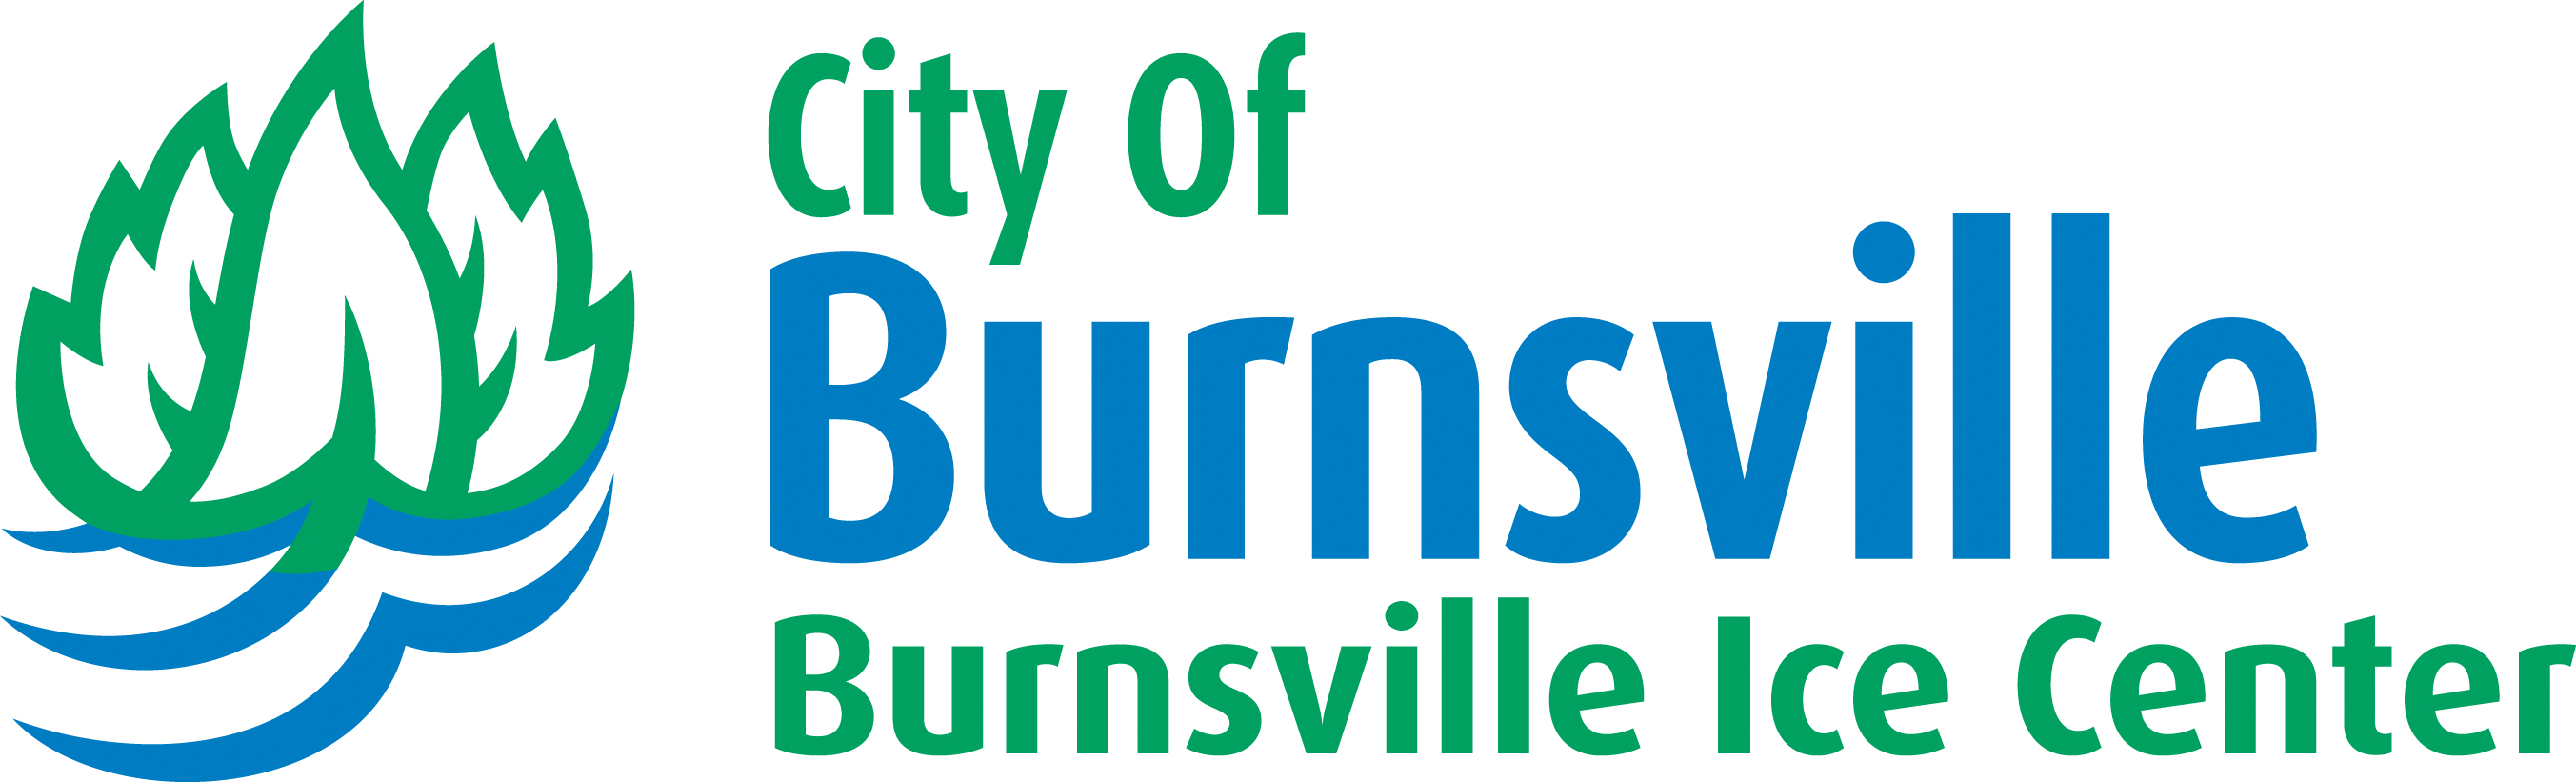 Burnsville Ice Center Logo